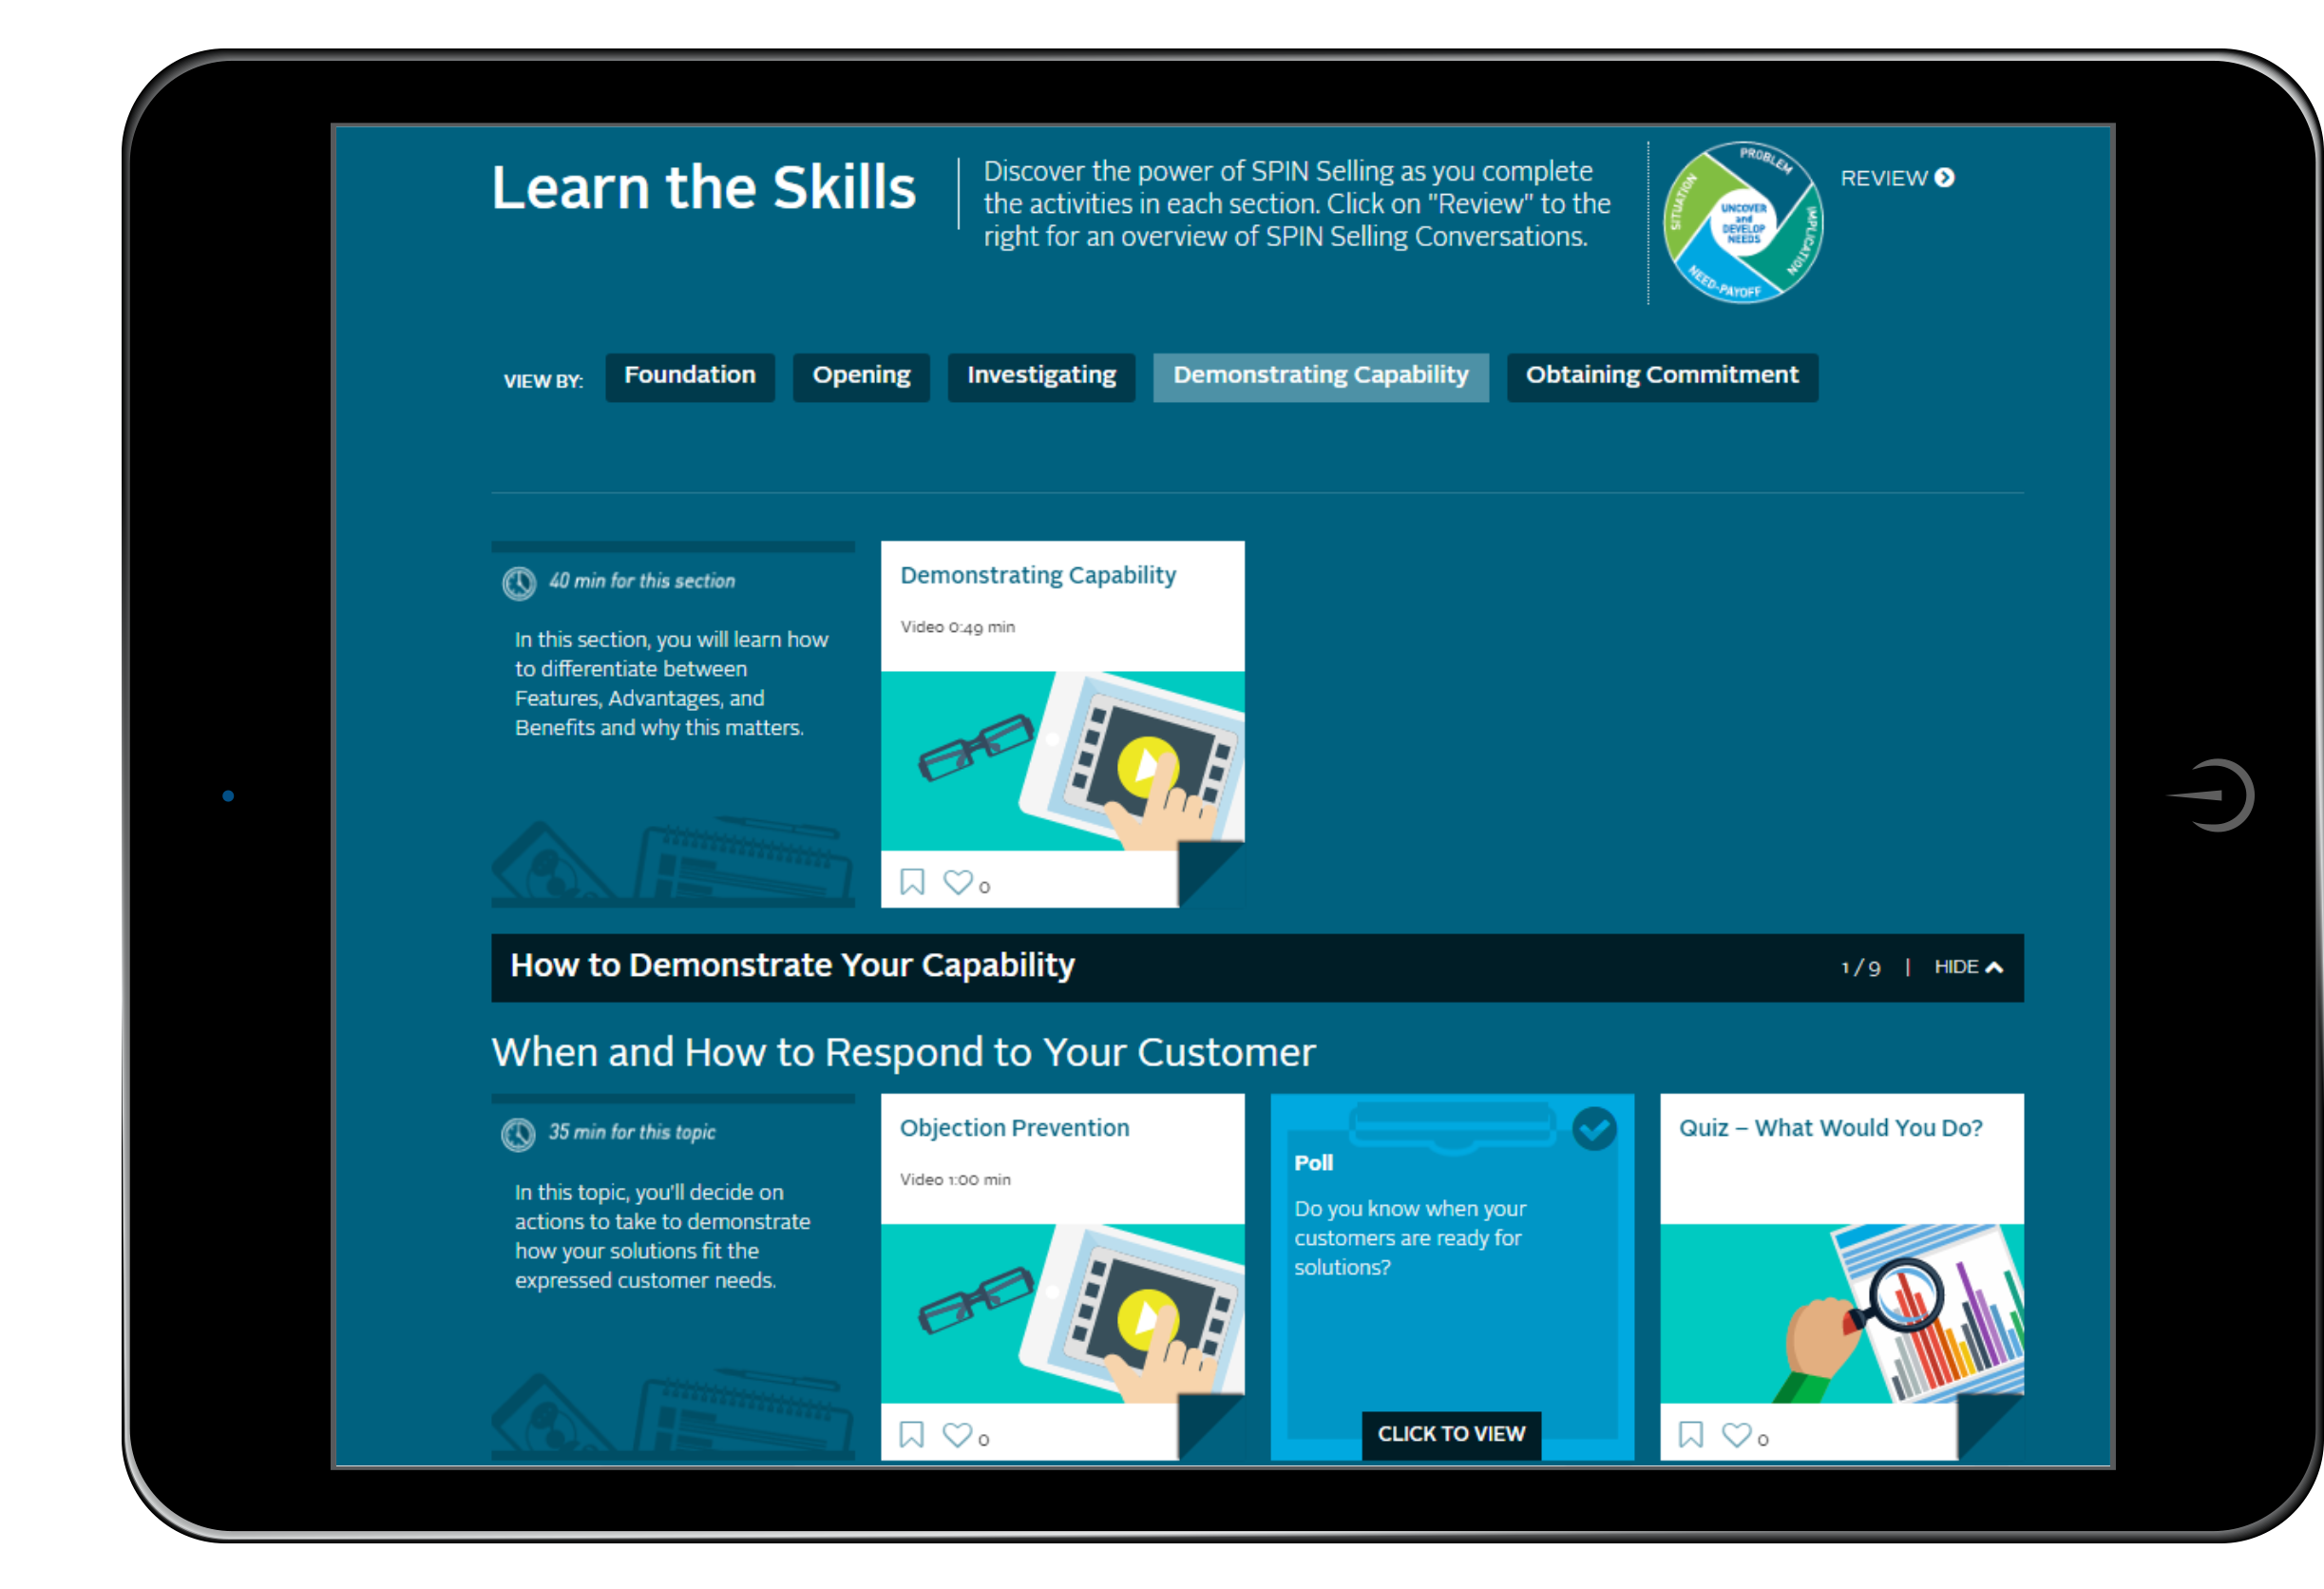 Just-In-Time Content Library for Self-Directed Learning